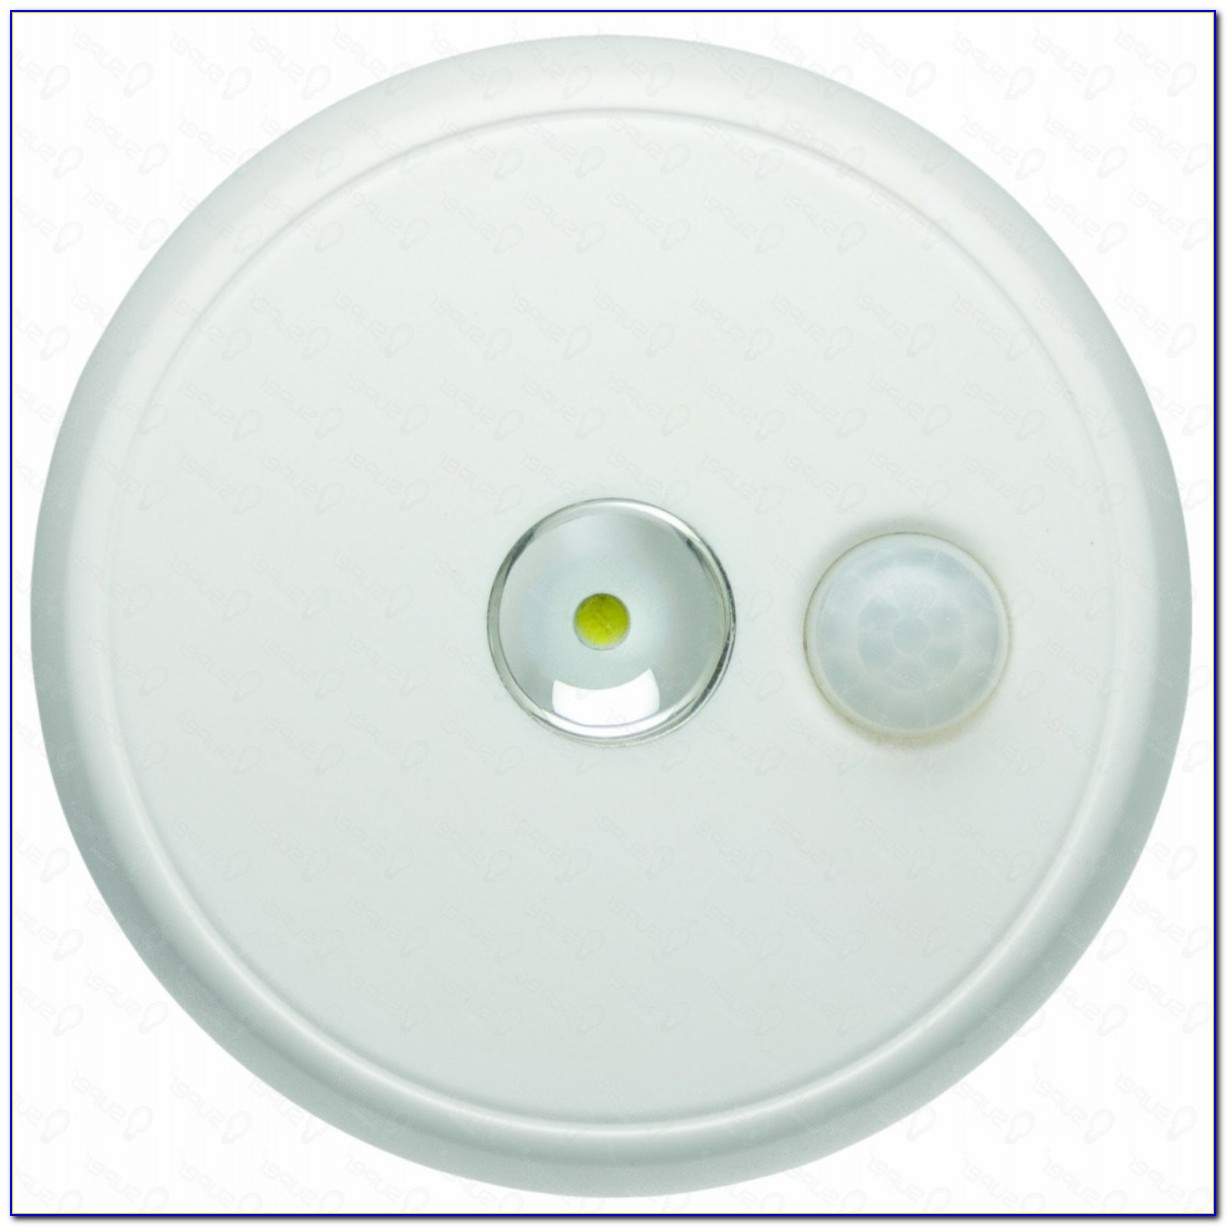 Motion Activated Indoor Ceiling Light Fixture